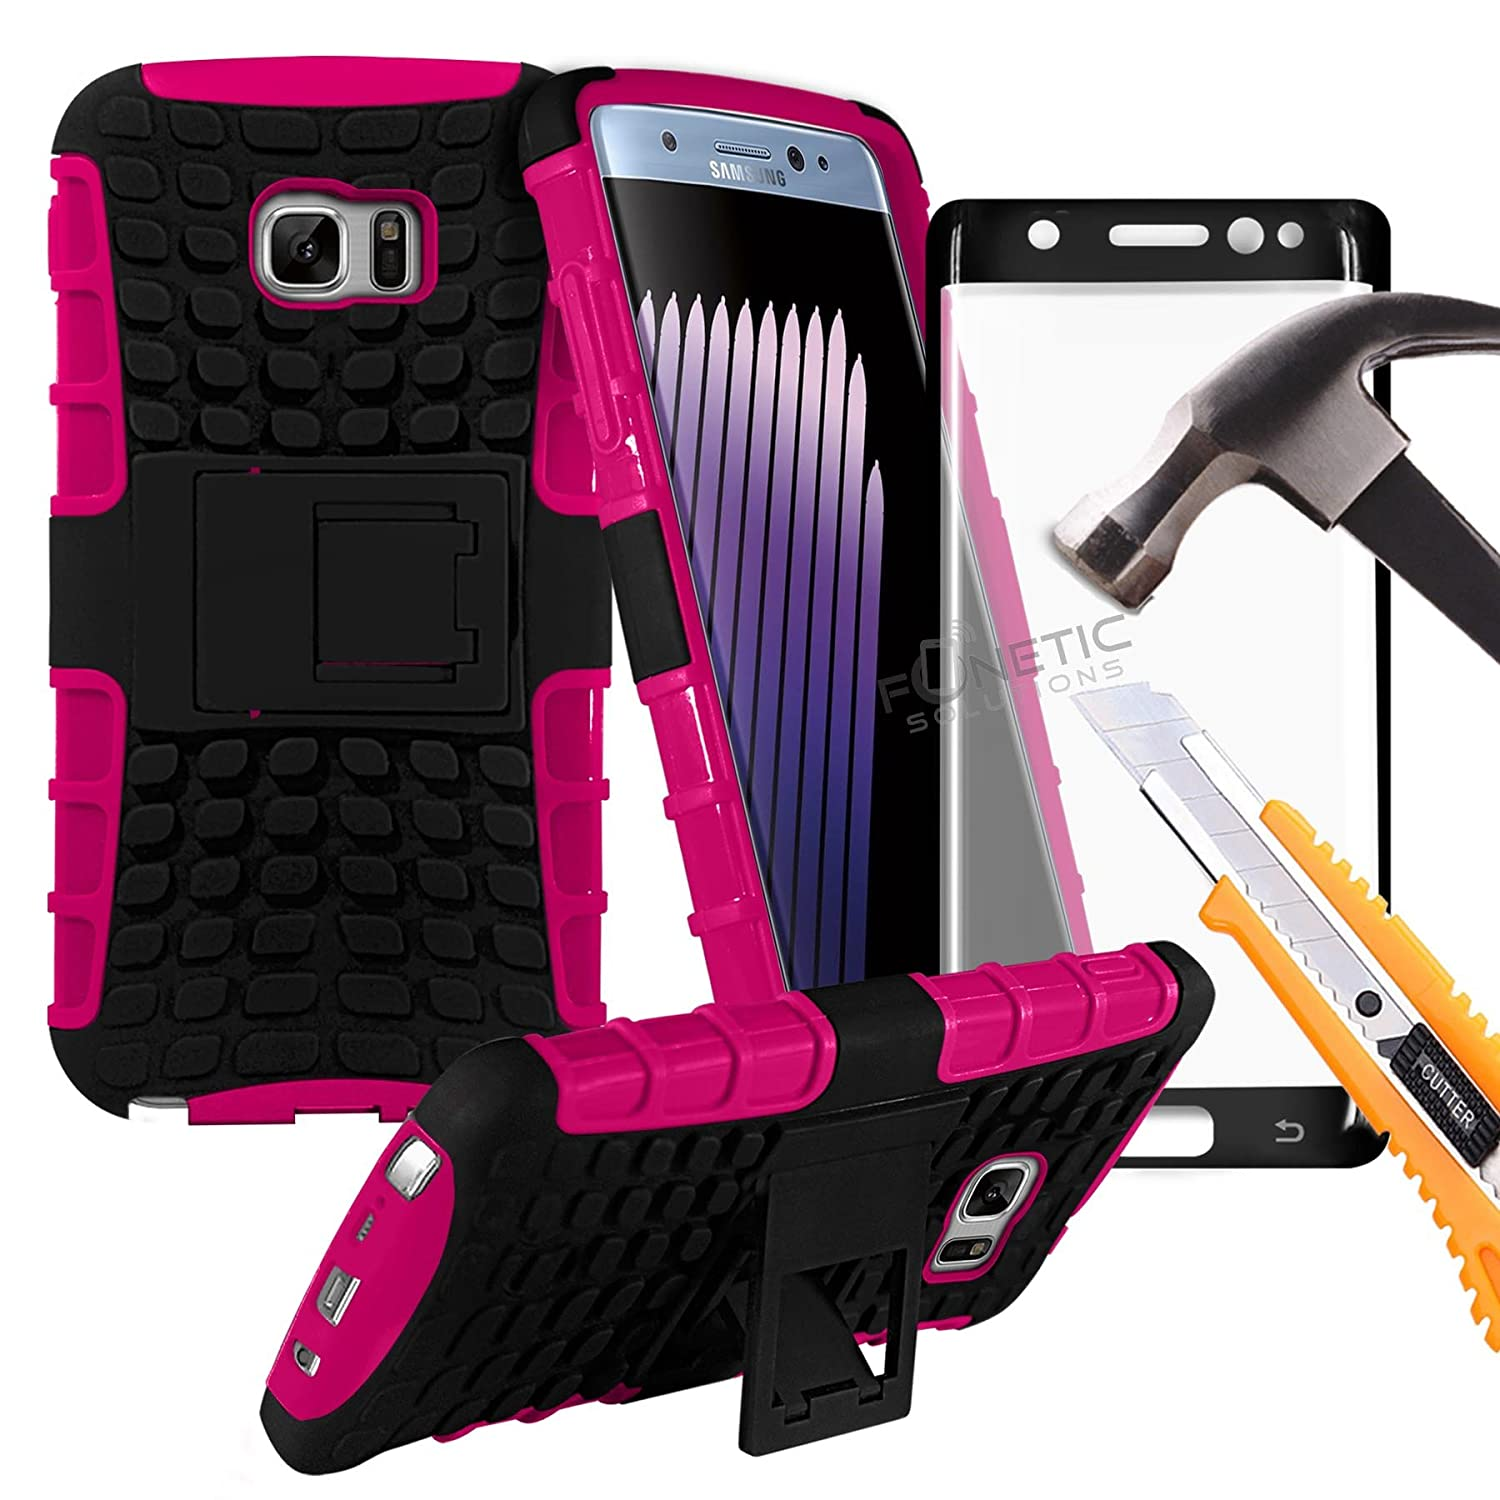 (Hot Pink) Samsung Galaxy S7 Edge case Heavy Duty mobile phone Case shockproof Tough Survivor Workman Cover and Stand Function With Full Screen Coverage 3D Curve Fit Shatterproof Tempered Glass Screen Protector by Fonetic Solutions®